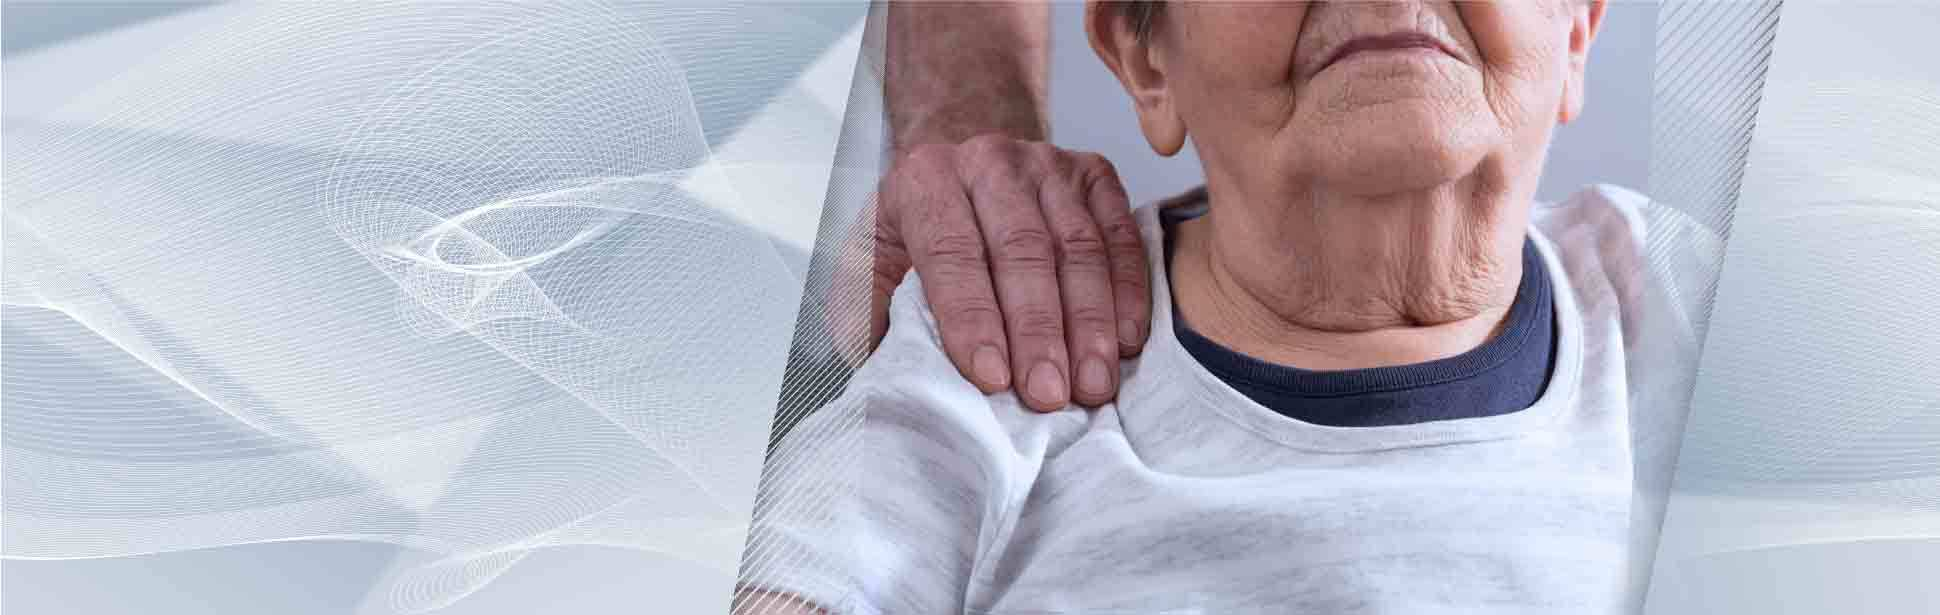 Adult day care caregiver with reassuring hand on seniors shoulder